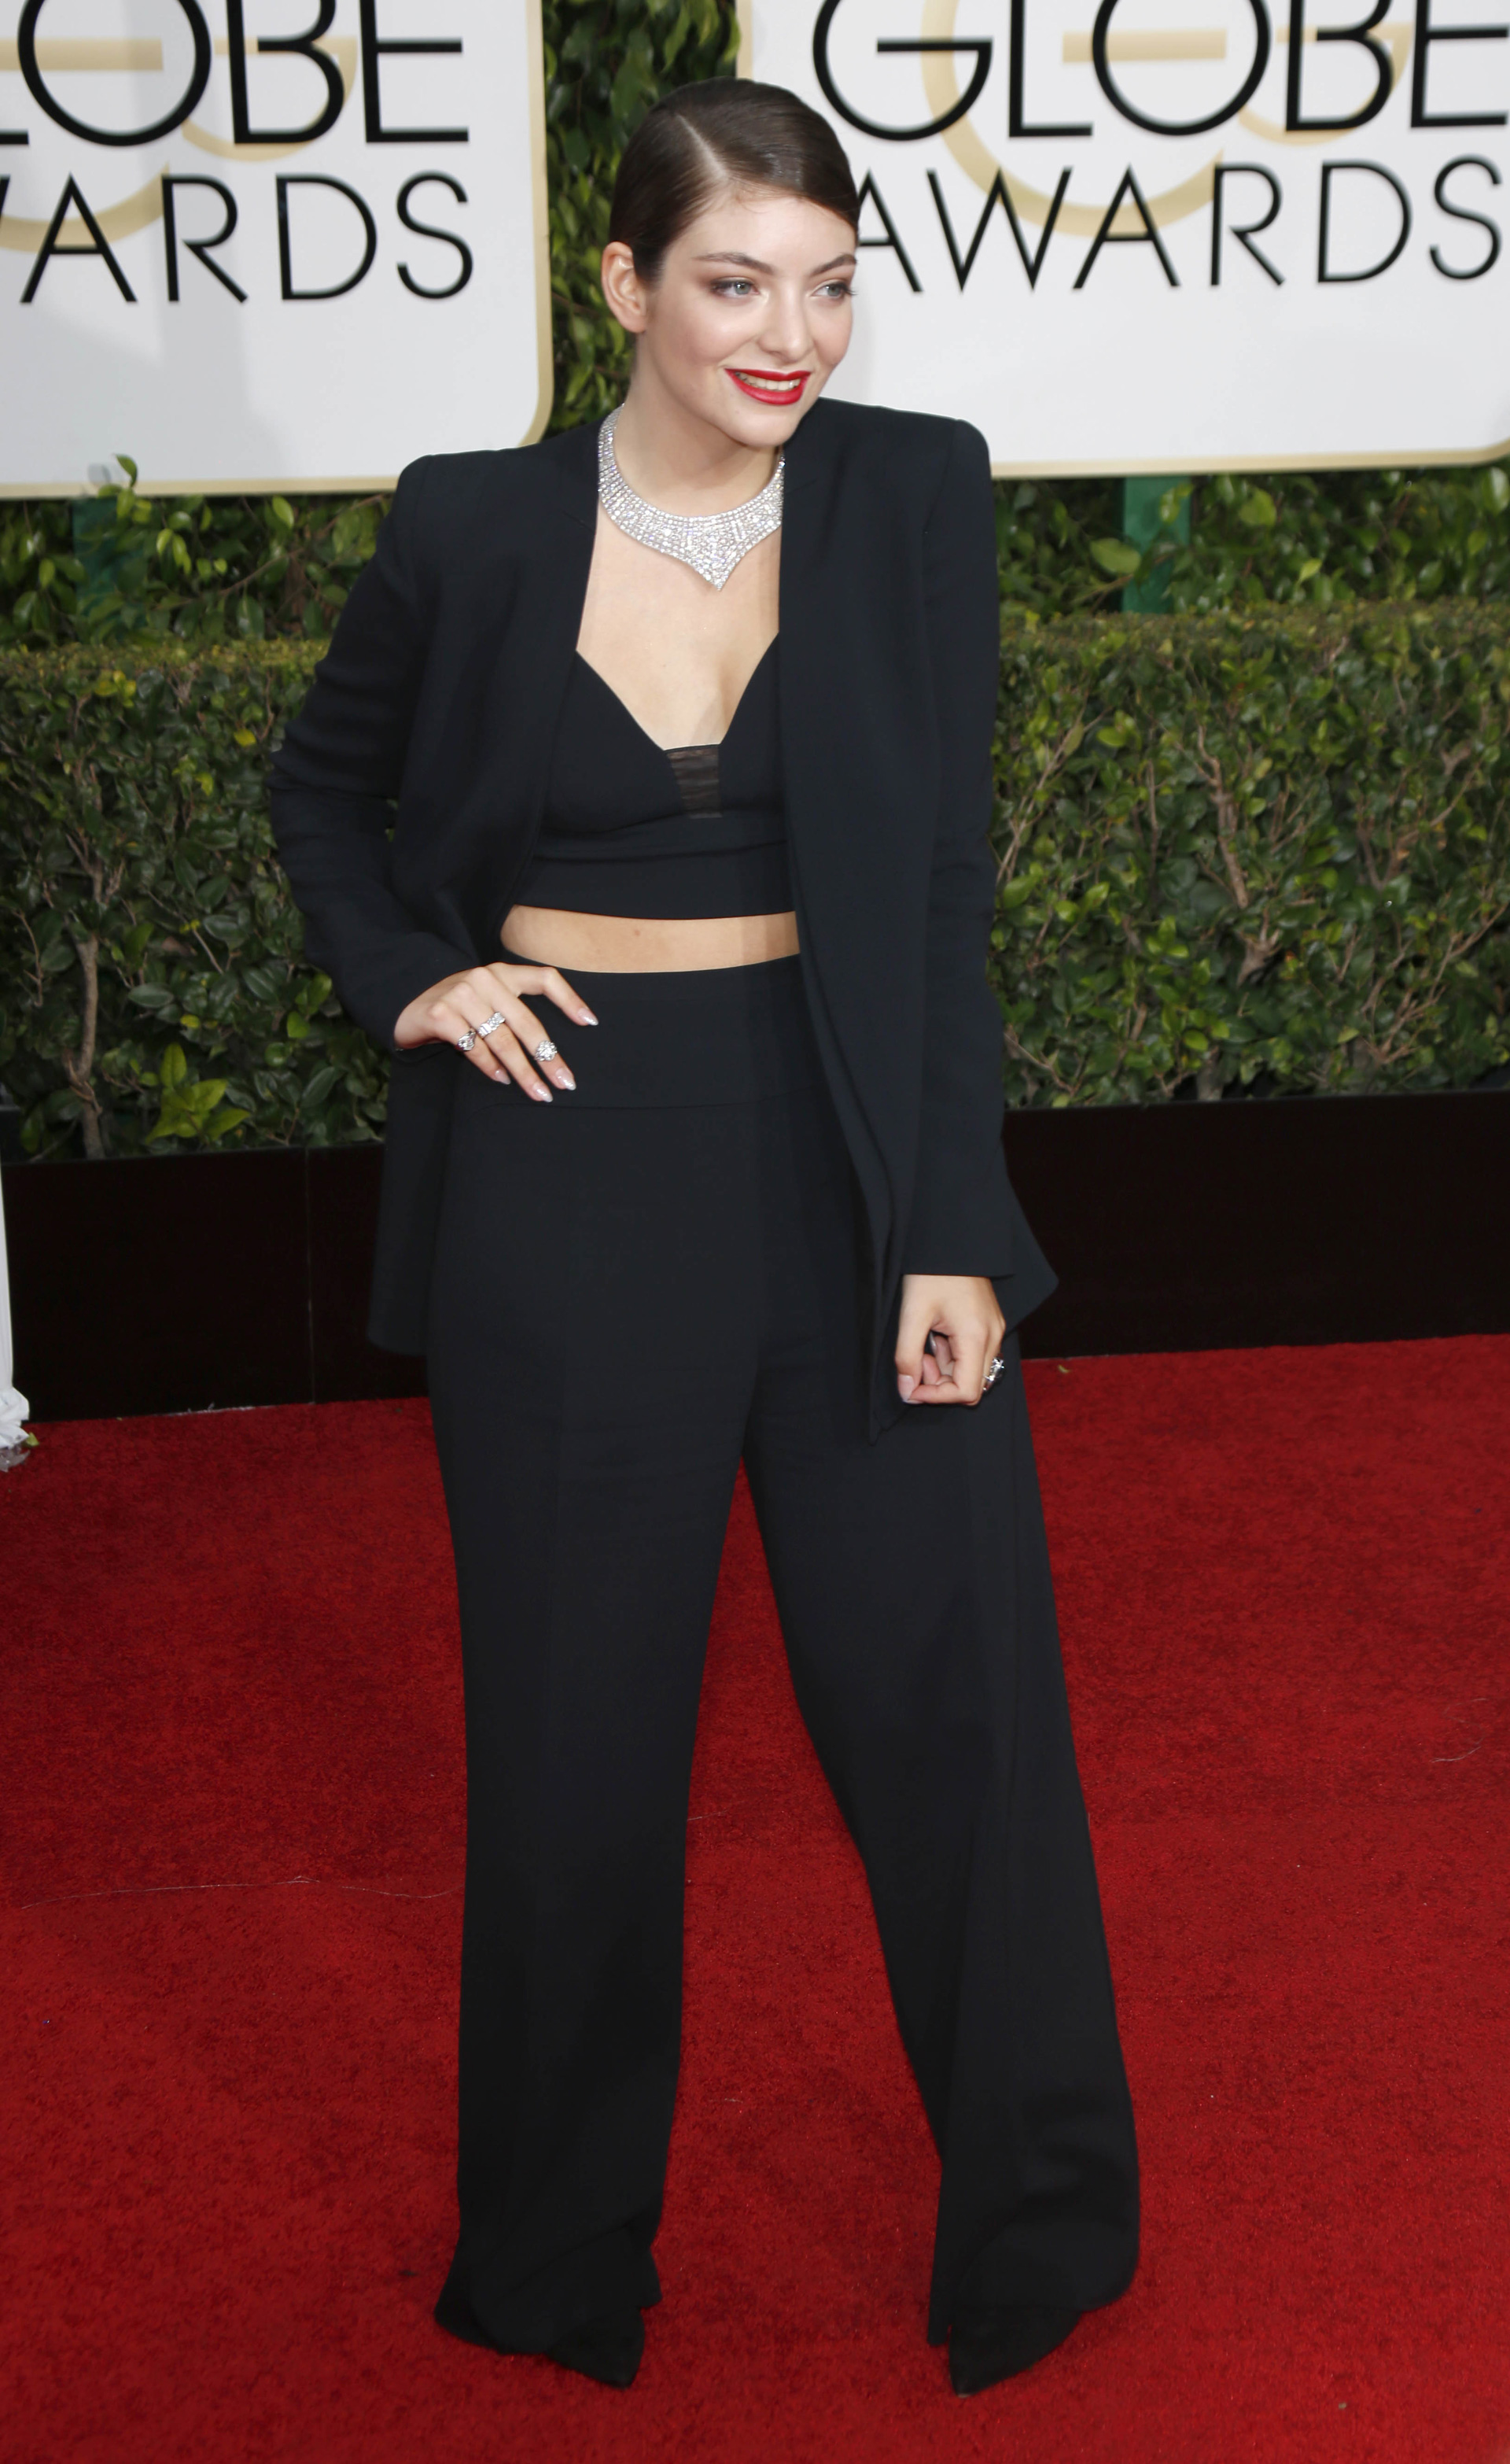 Lorde at the Golden globes